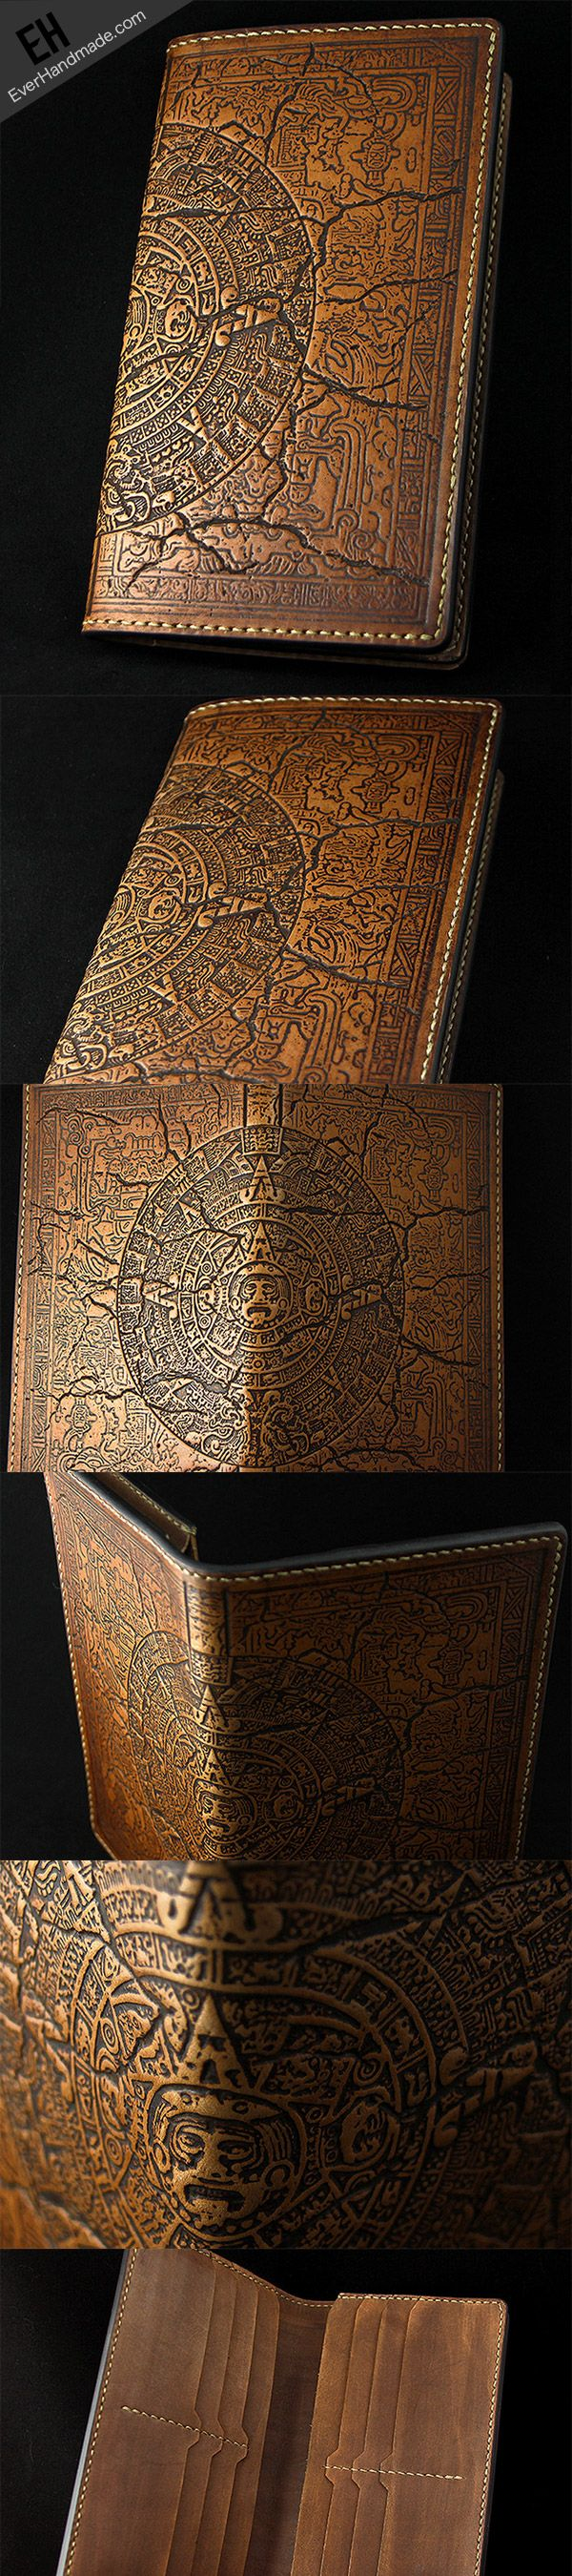 #mayan #maya Handmade leather Carved mayan solar long wallet for men So stunning!!!!!!!!!!